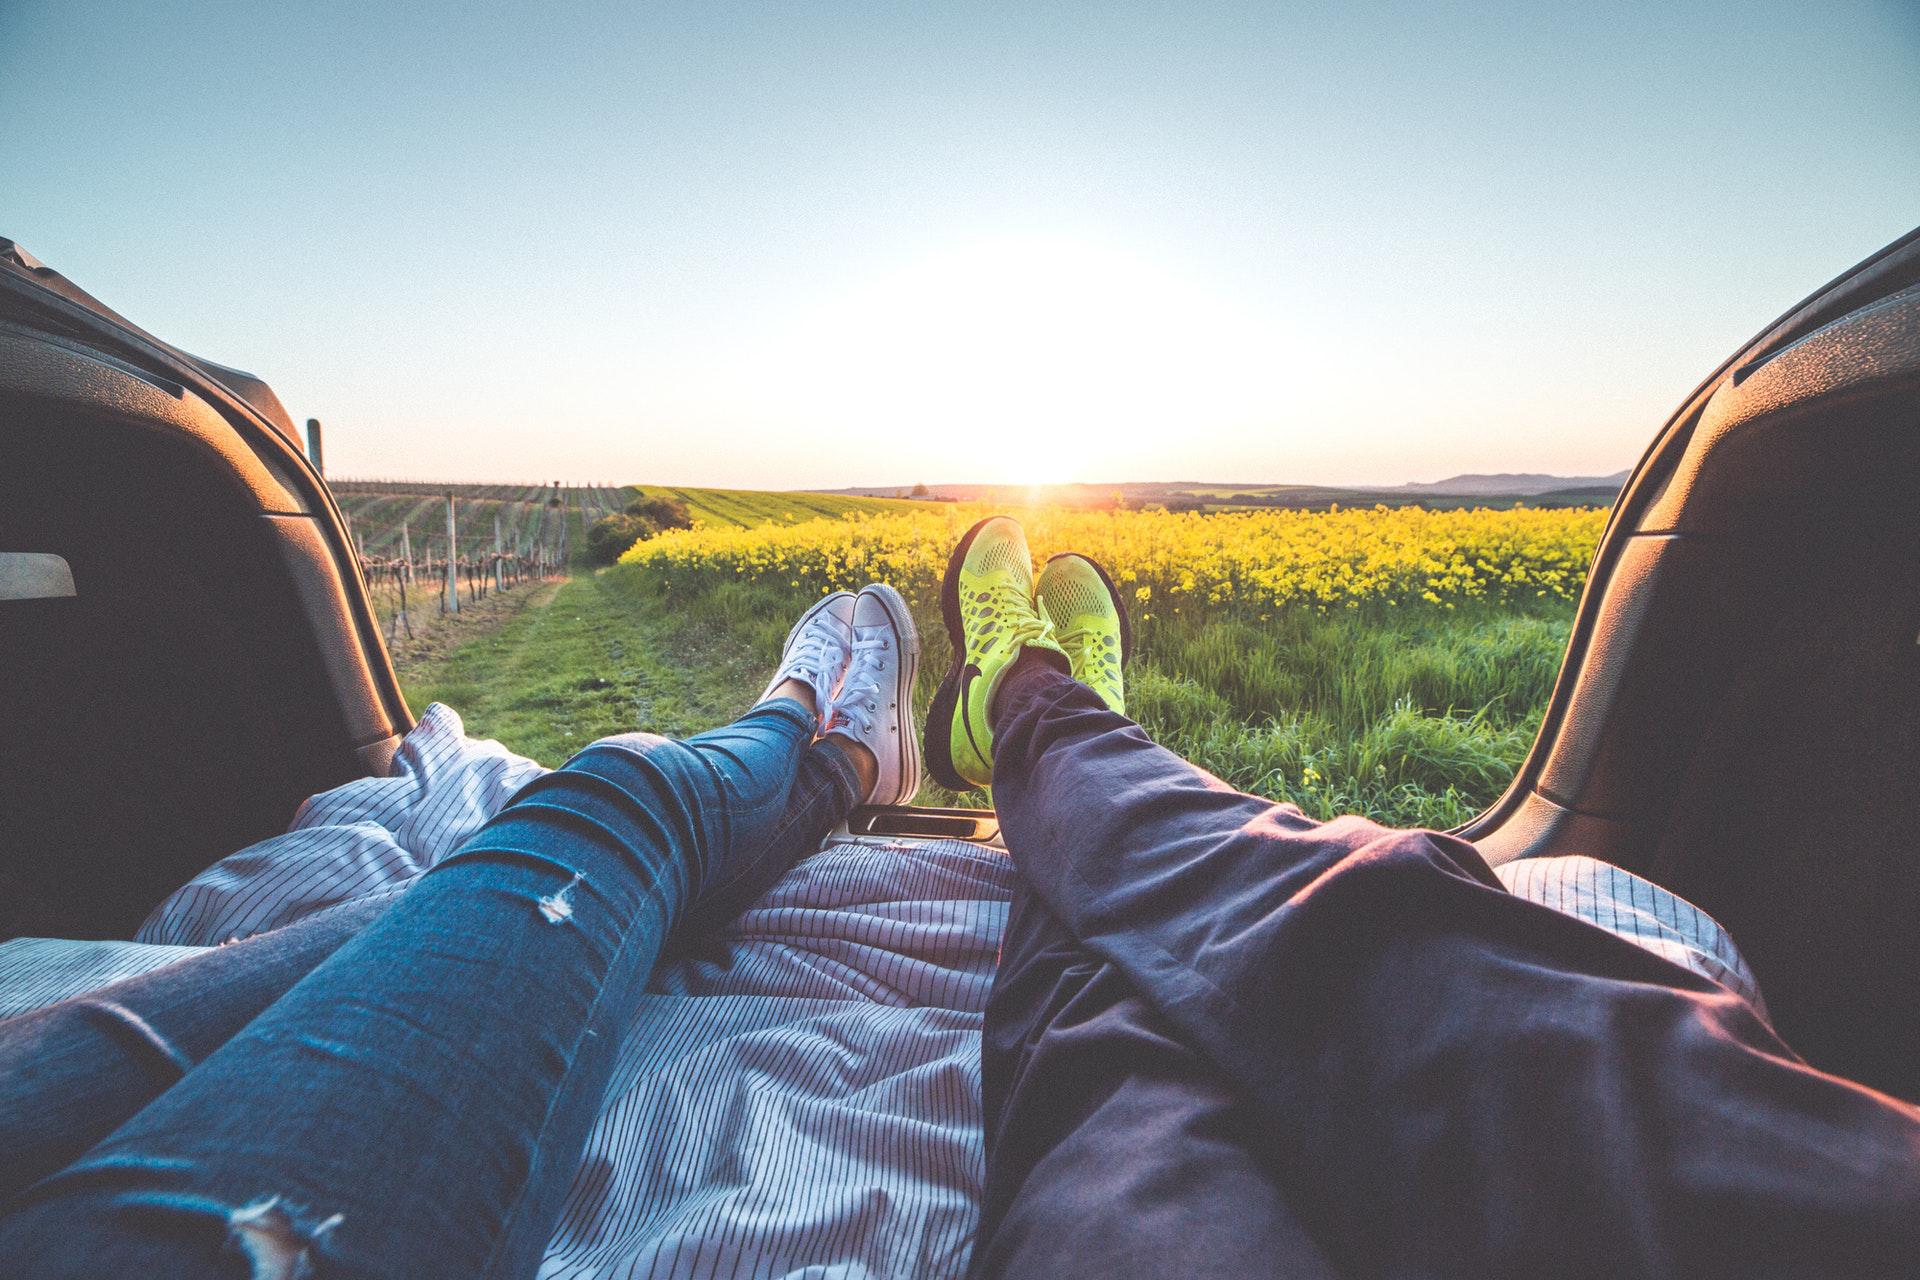 5 Reasons To Go on A Road Trip